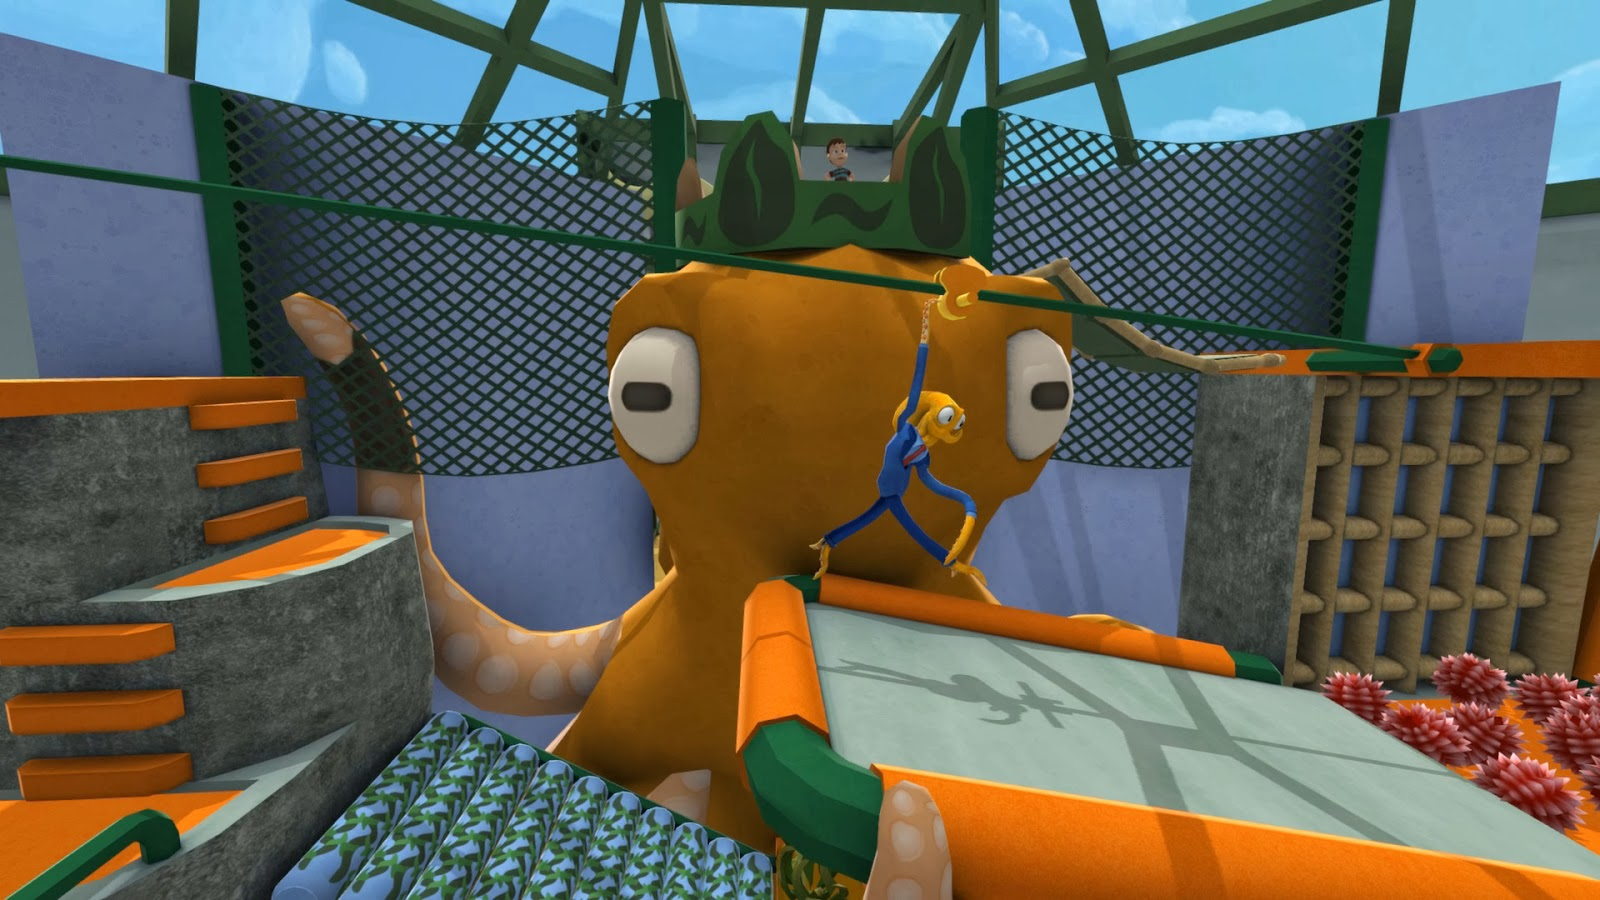 Octodad: Dadliest Catch gameplay